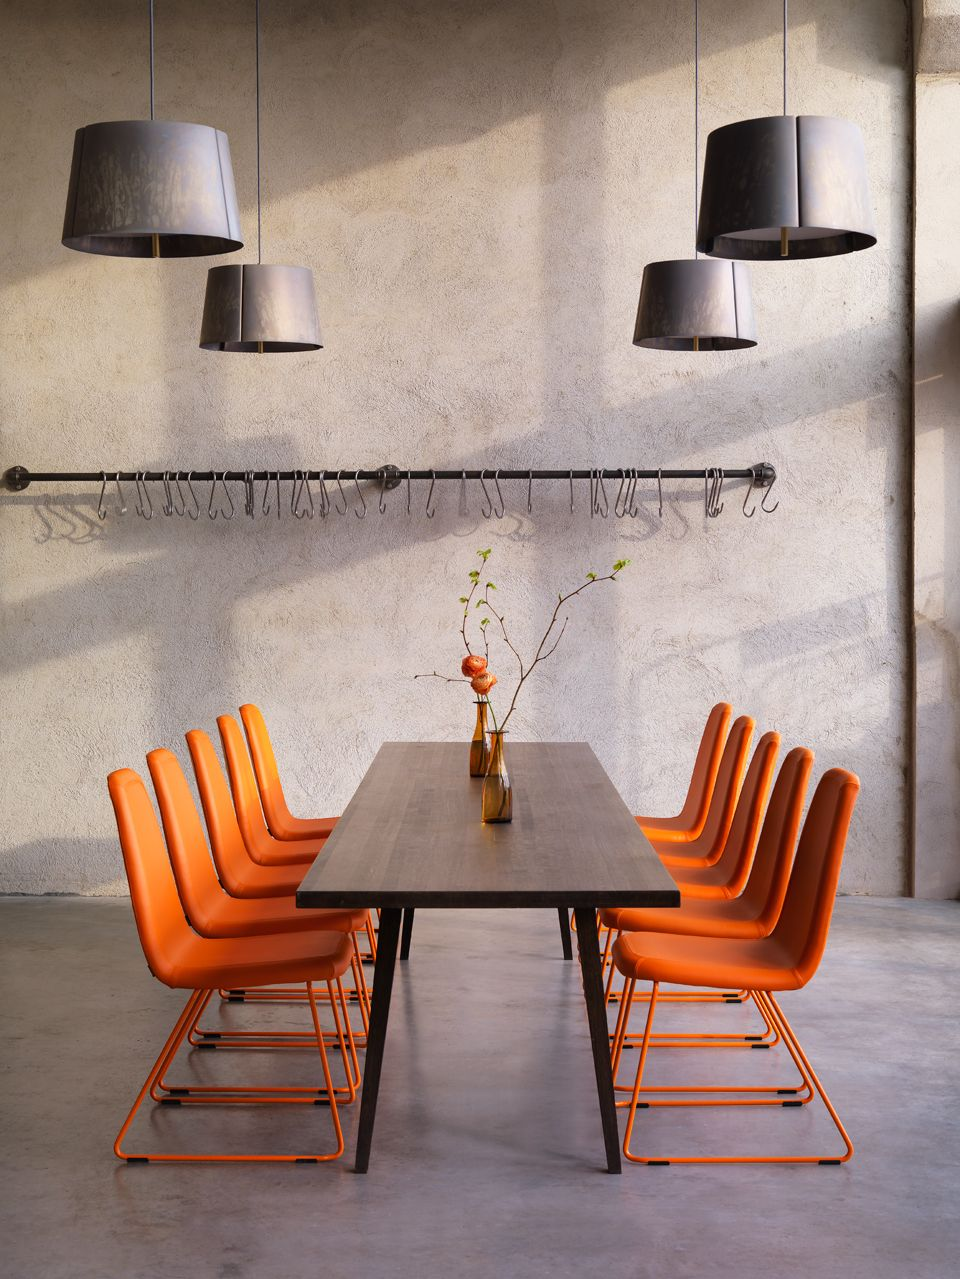 Game meeting chair in pure solid orange colour against dark wood and pale grey room surfaces